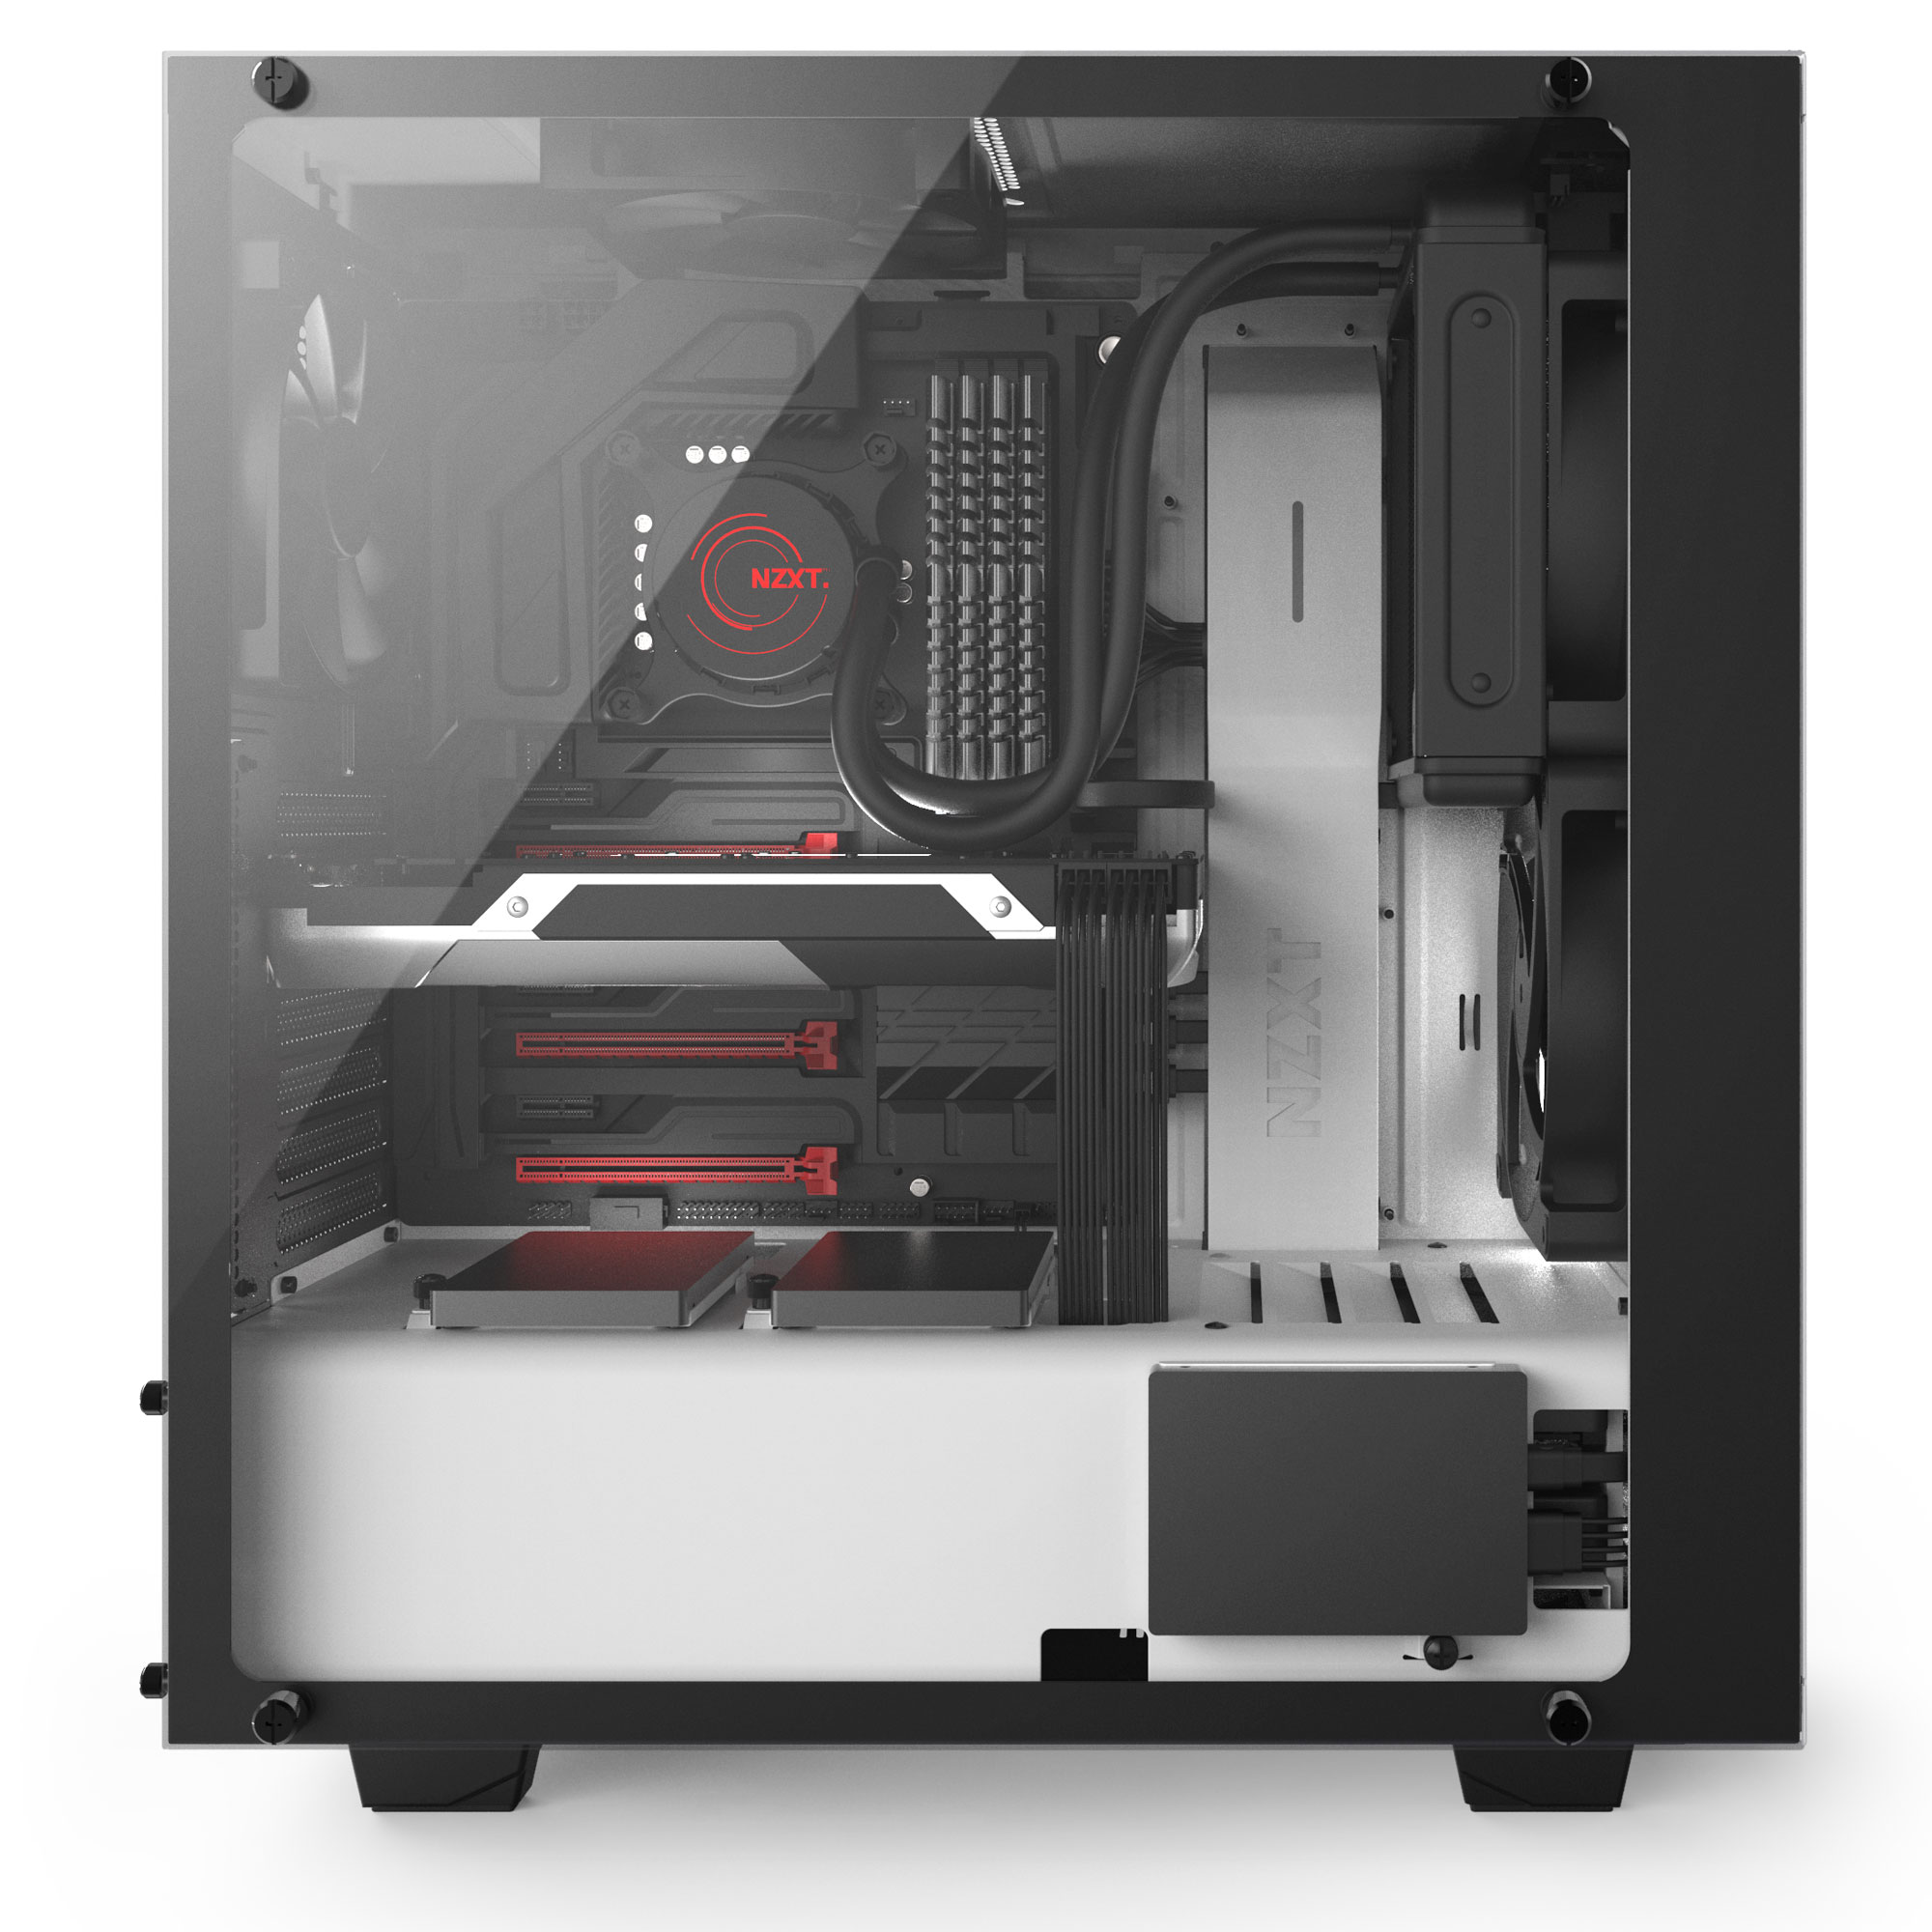 S340 Elite White System Window 2000x2000